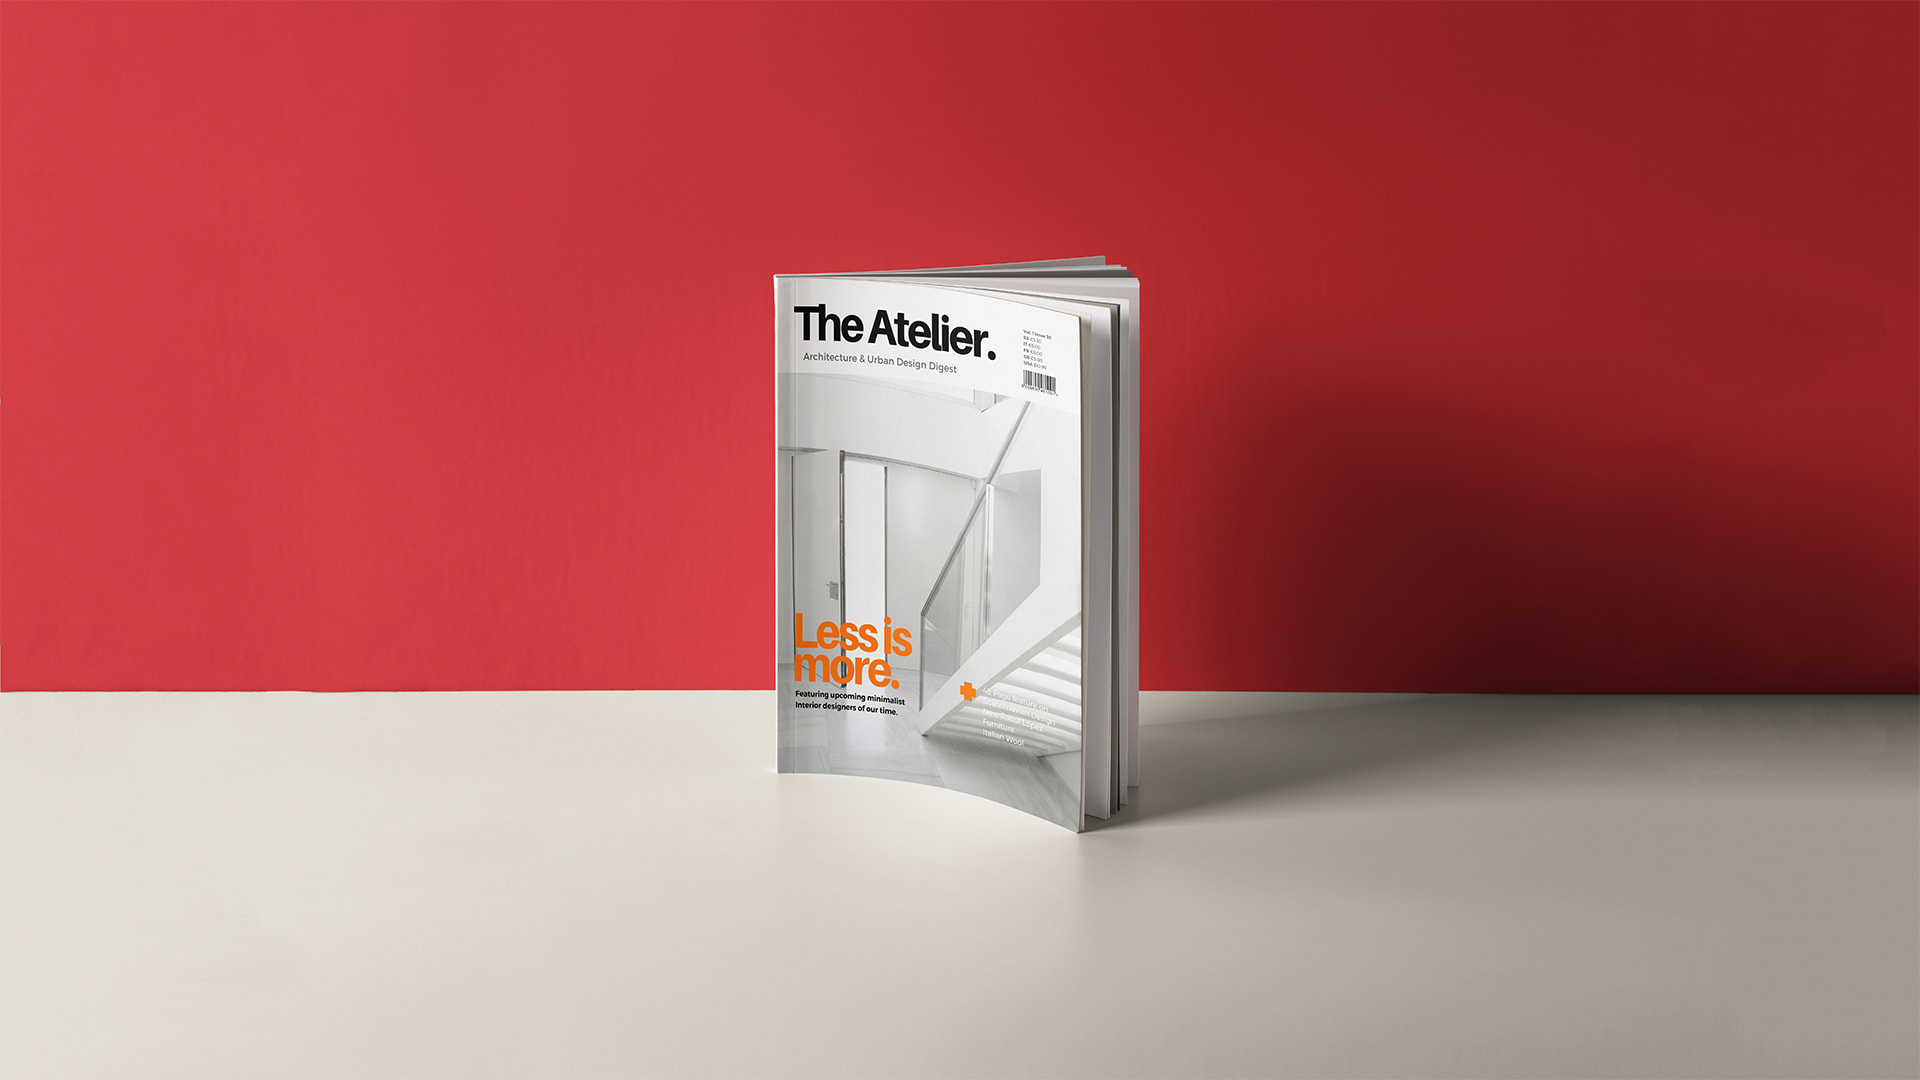 50 design techniques that made these magazine covers awesome featured image